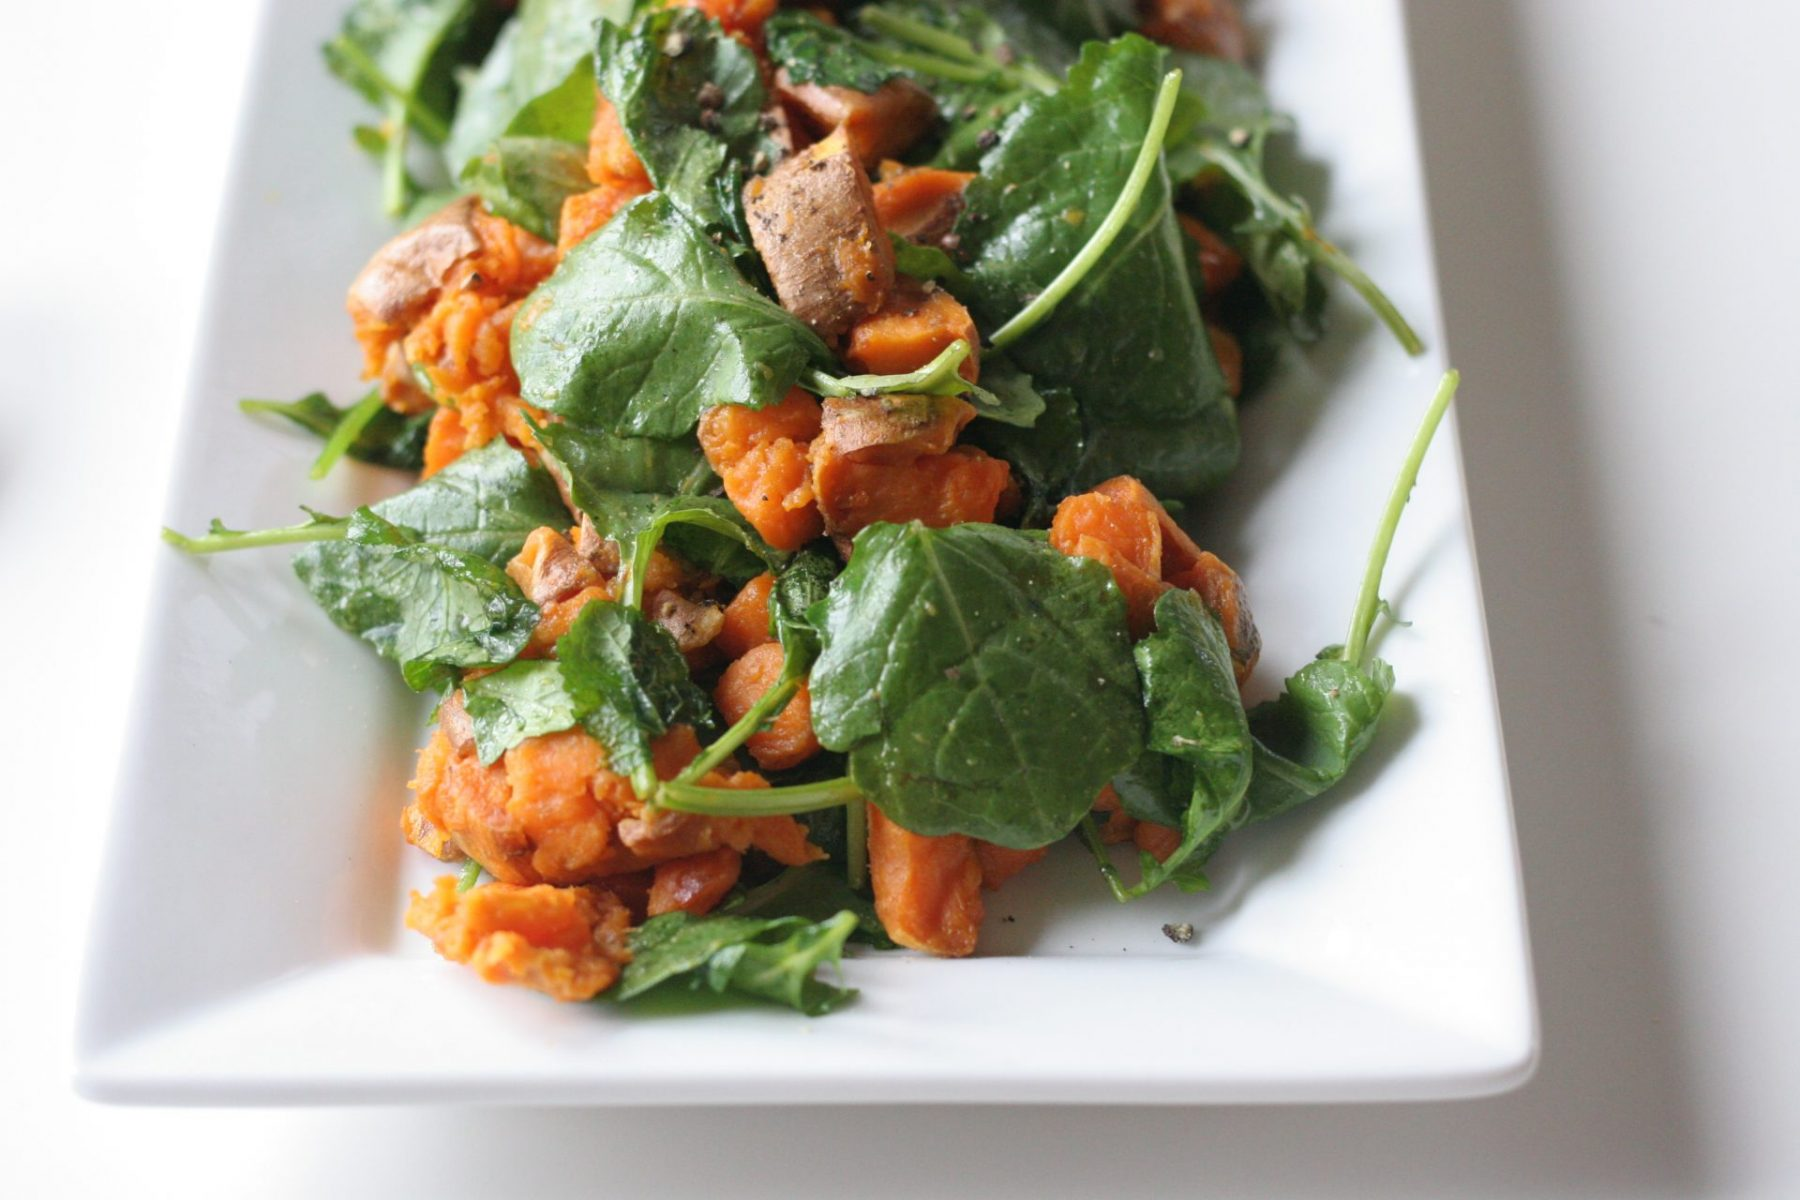 Baked sweet potatoes with wilted baby kale on a plate